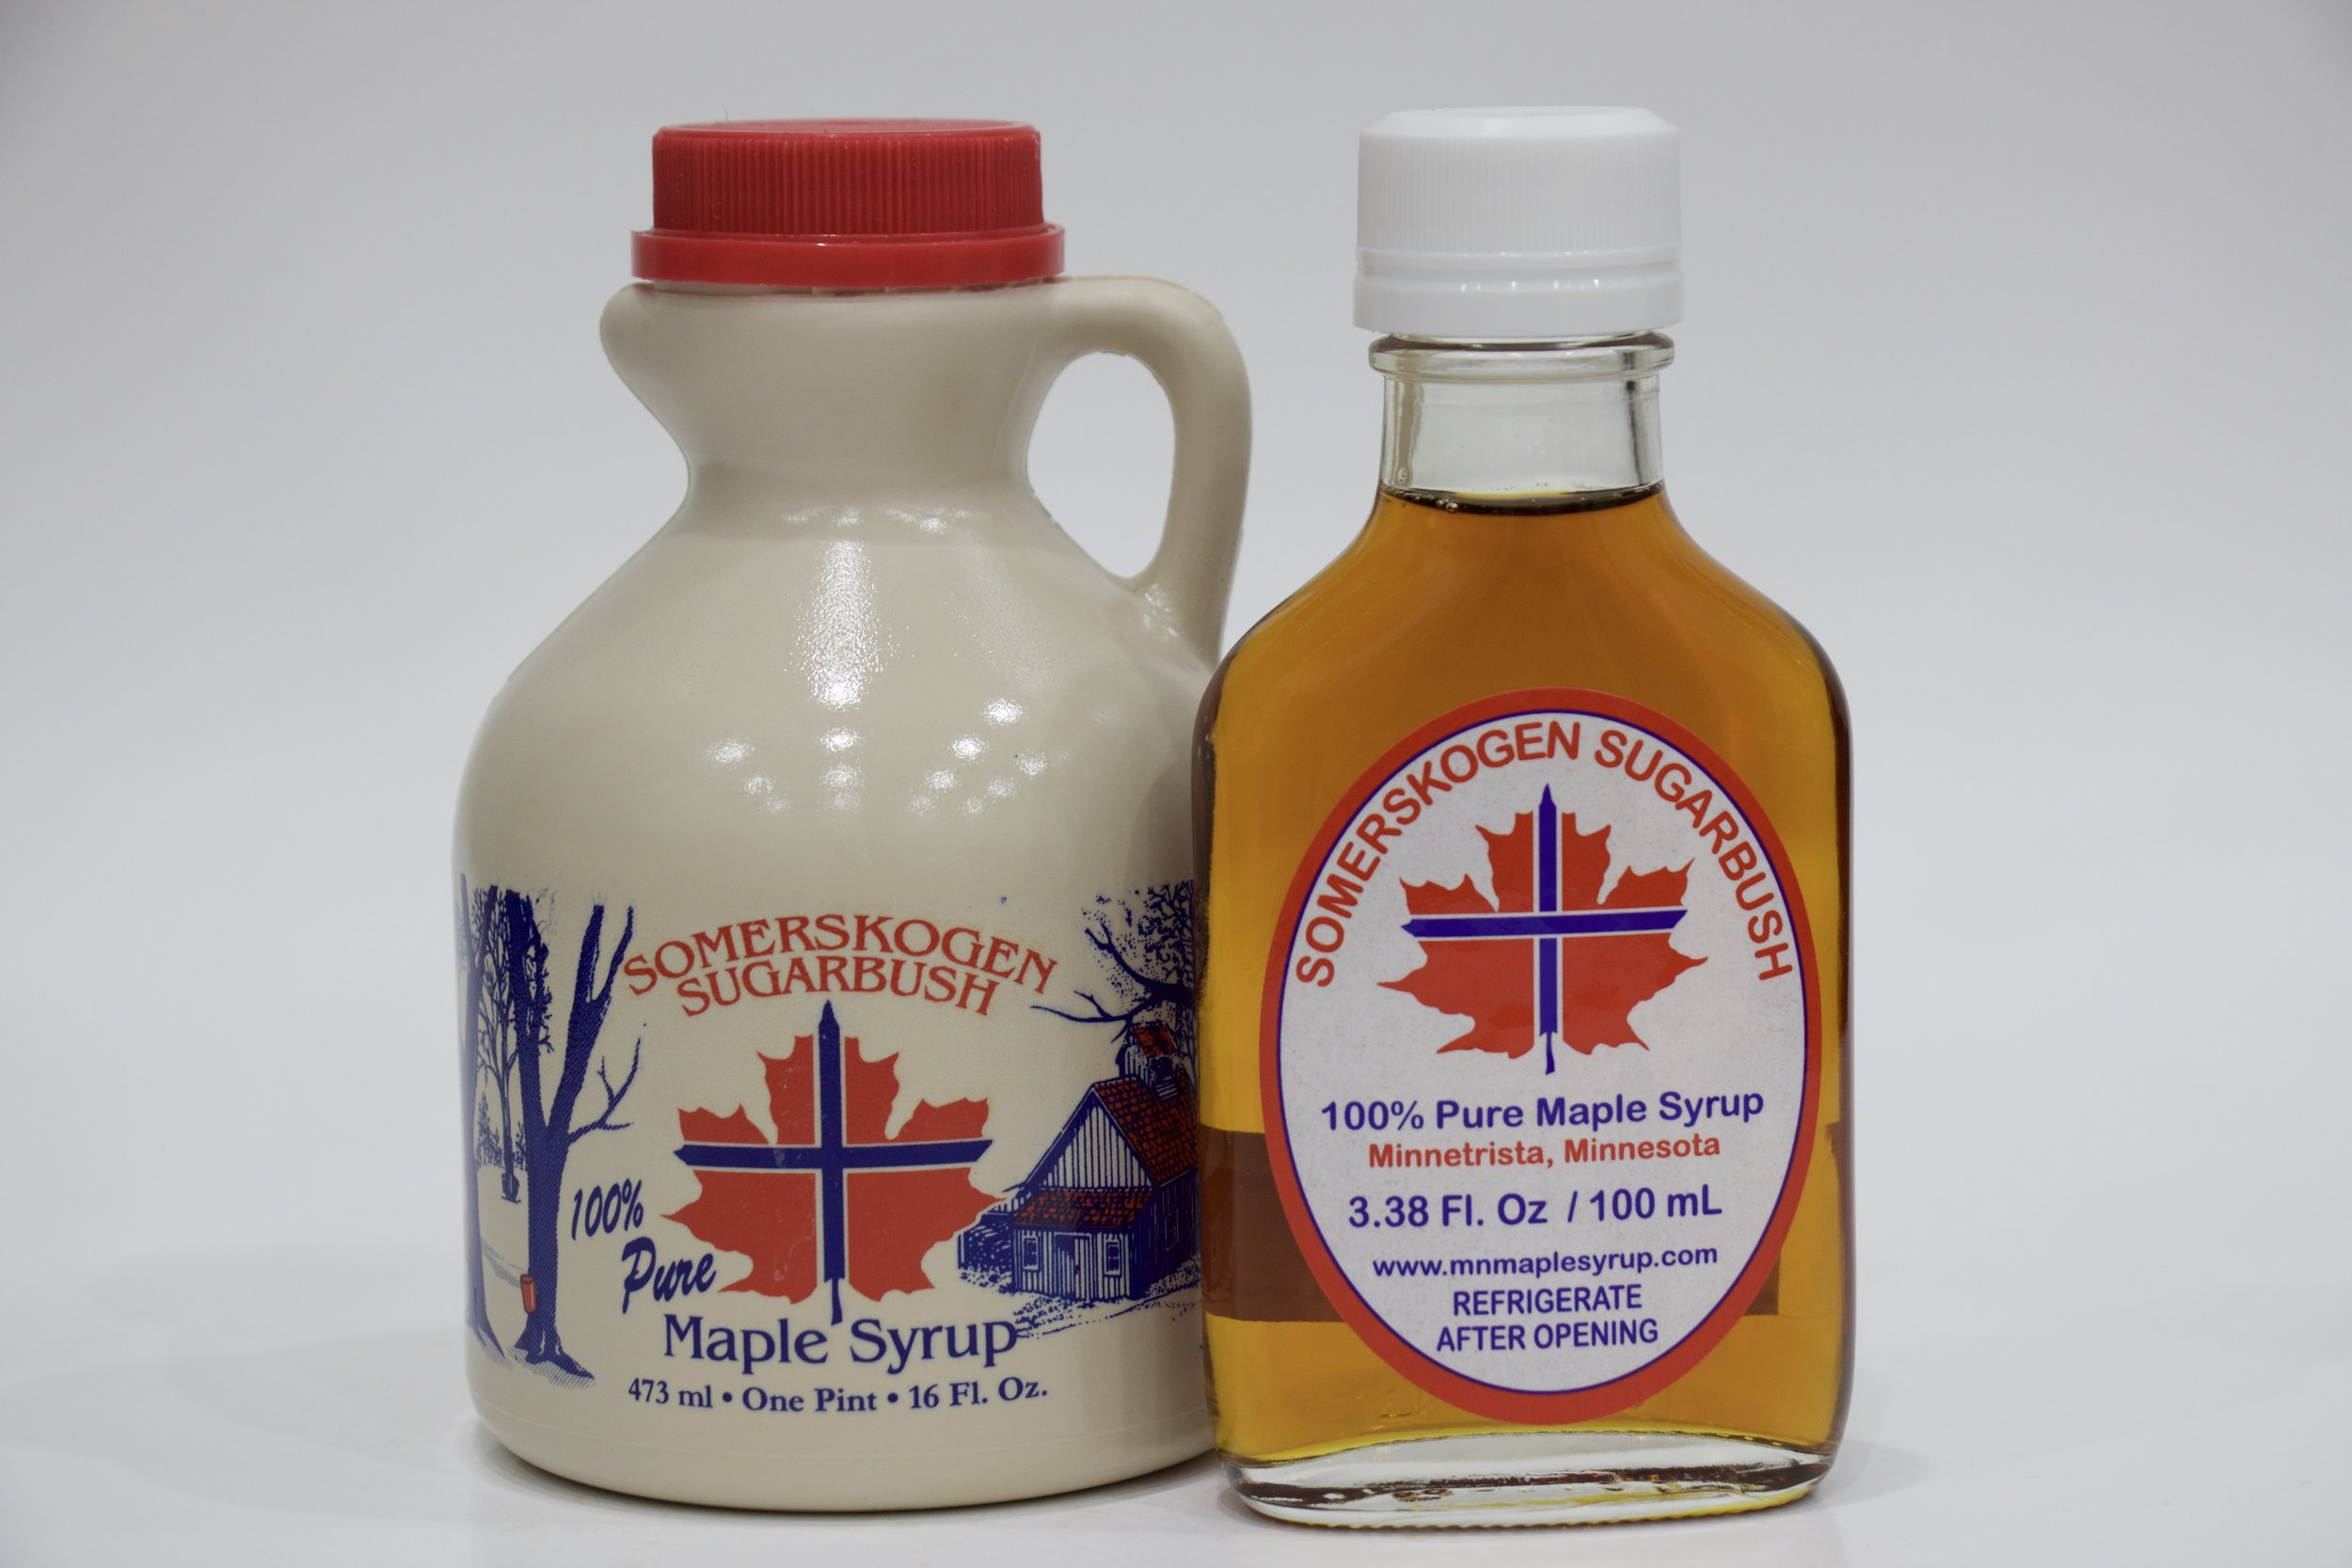 Lake Minnetonka Maple Syrup